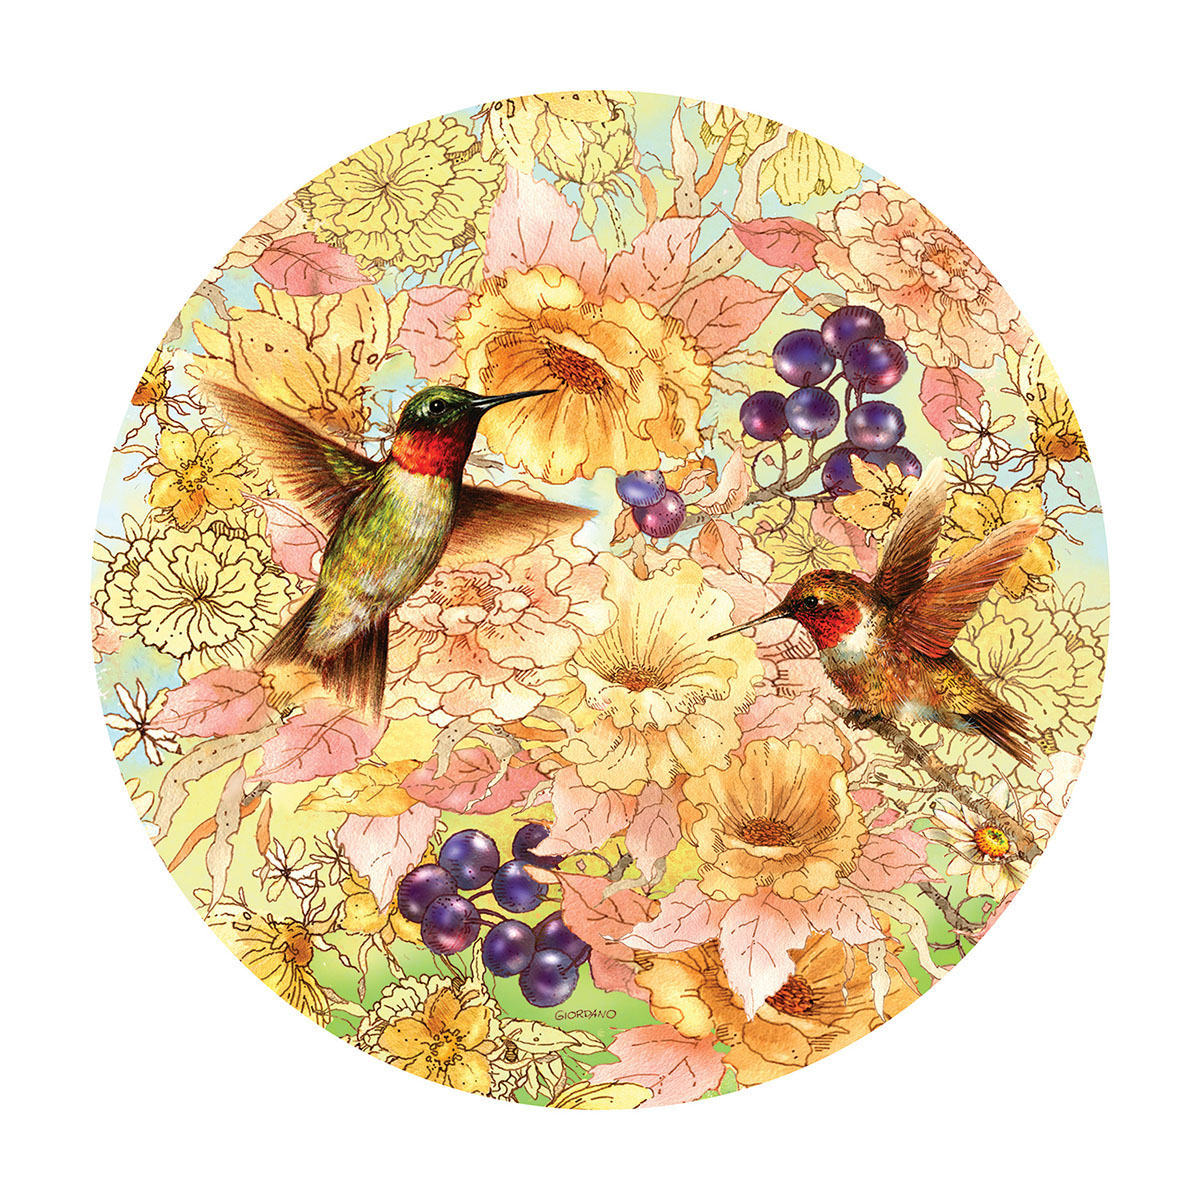 Hummingbirds and Berries - Scratch and Dent Birds Shaped Puzzle